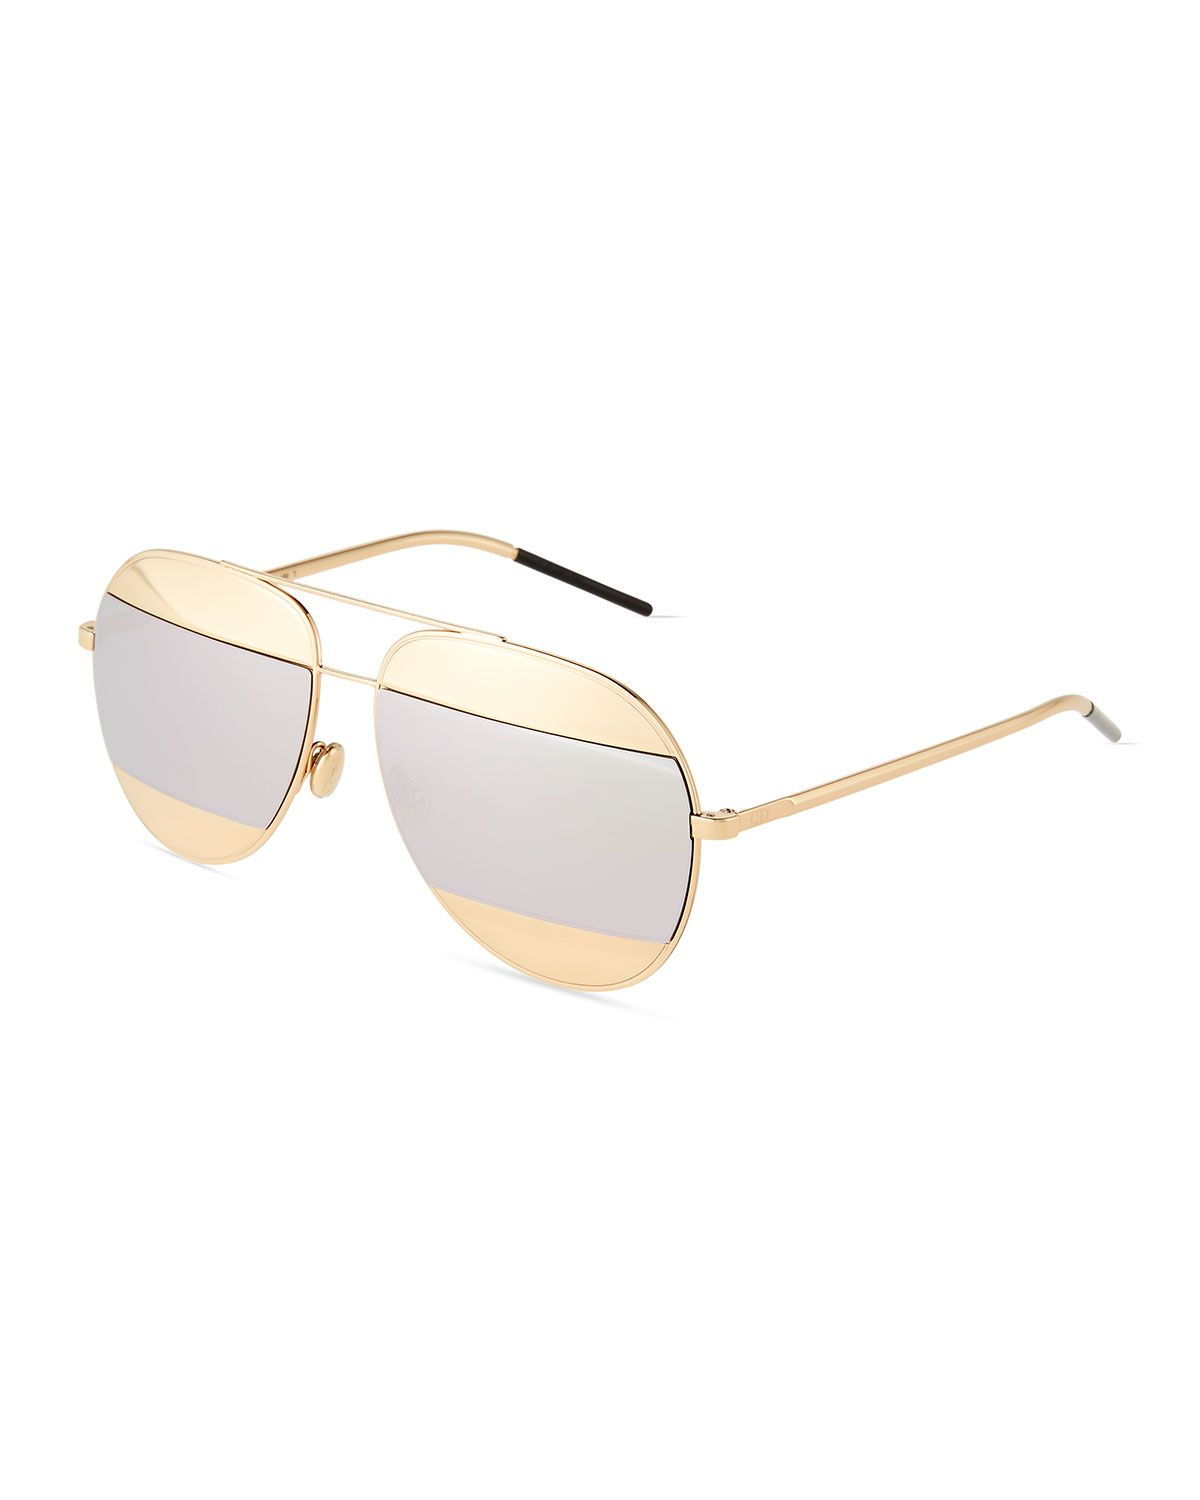 b601683a3001 DiorSplit Two-Tone Metallic Aviator Sunglasses